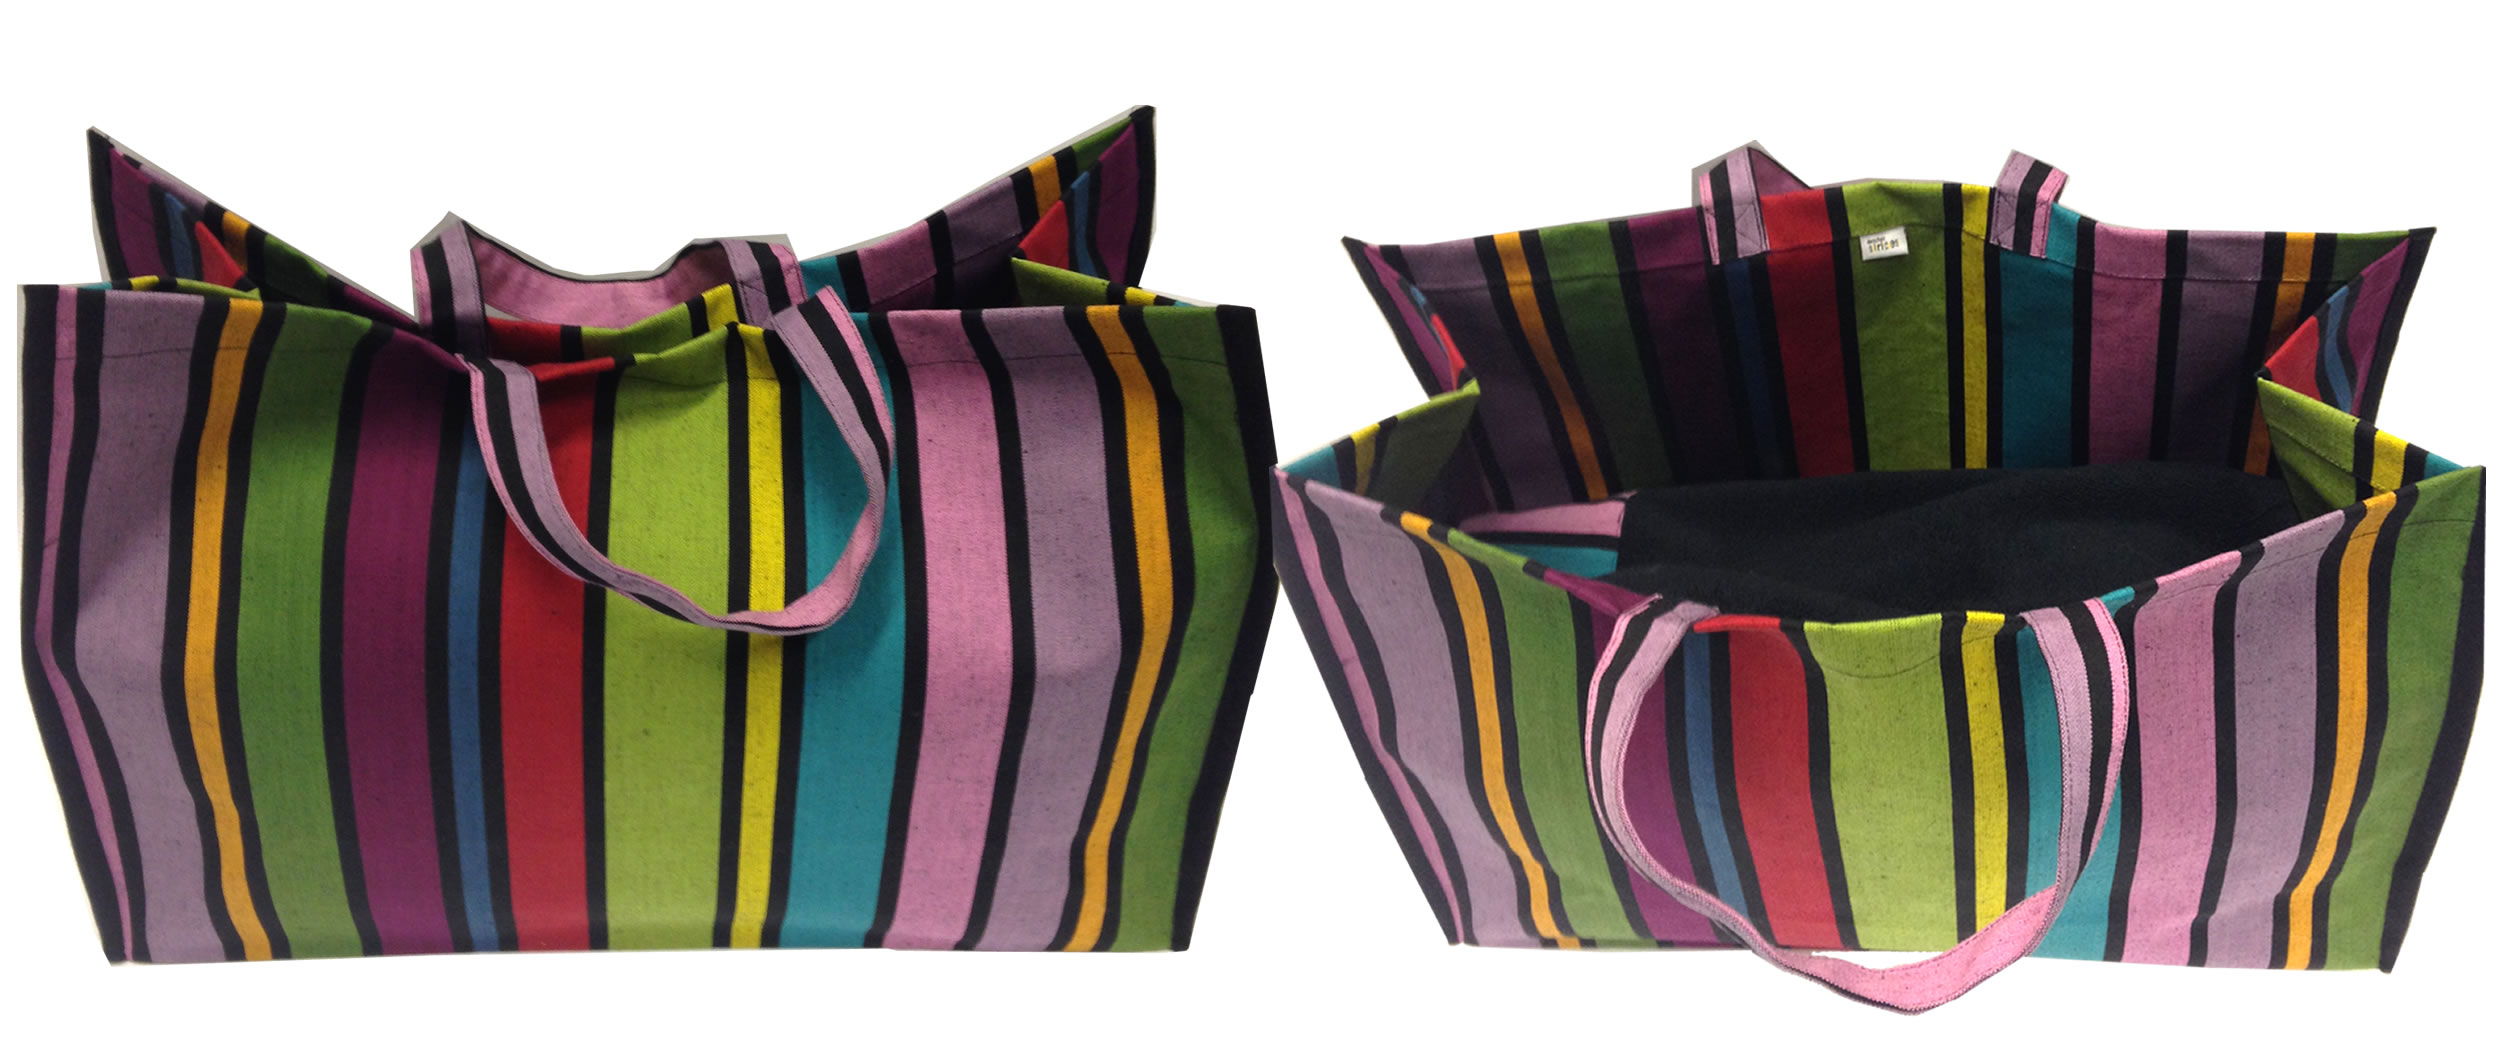 Extra Large Beach Bags | The Stripes Company United States